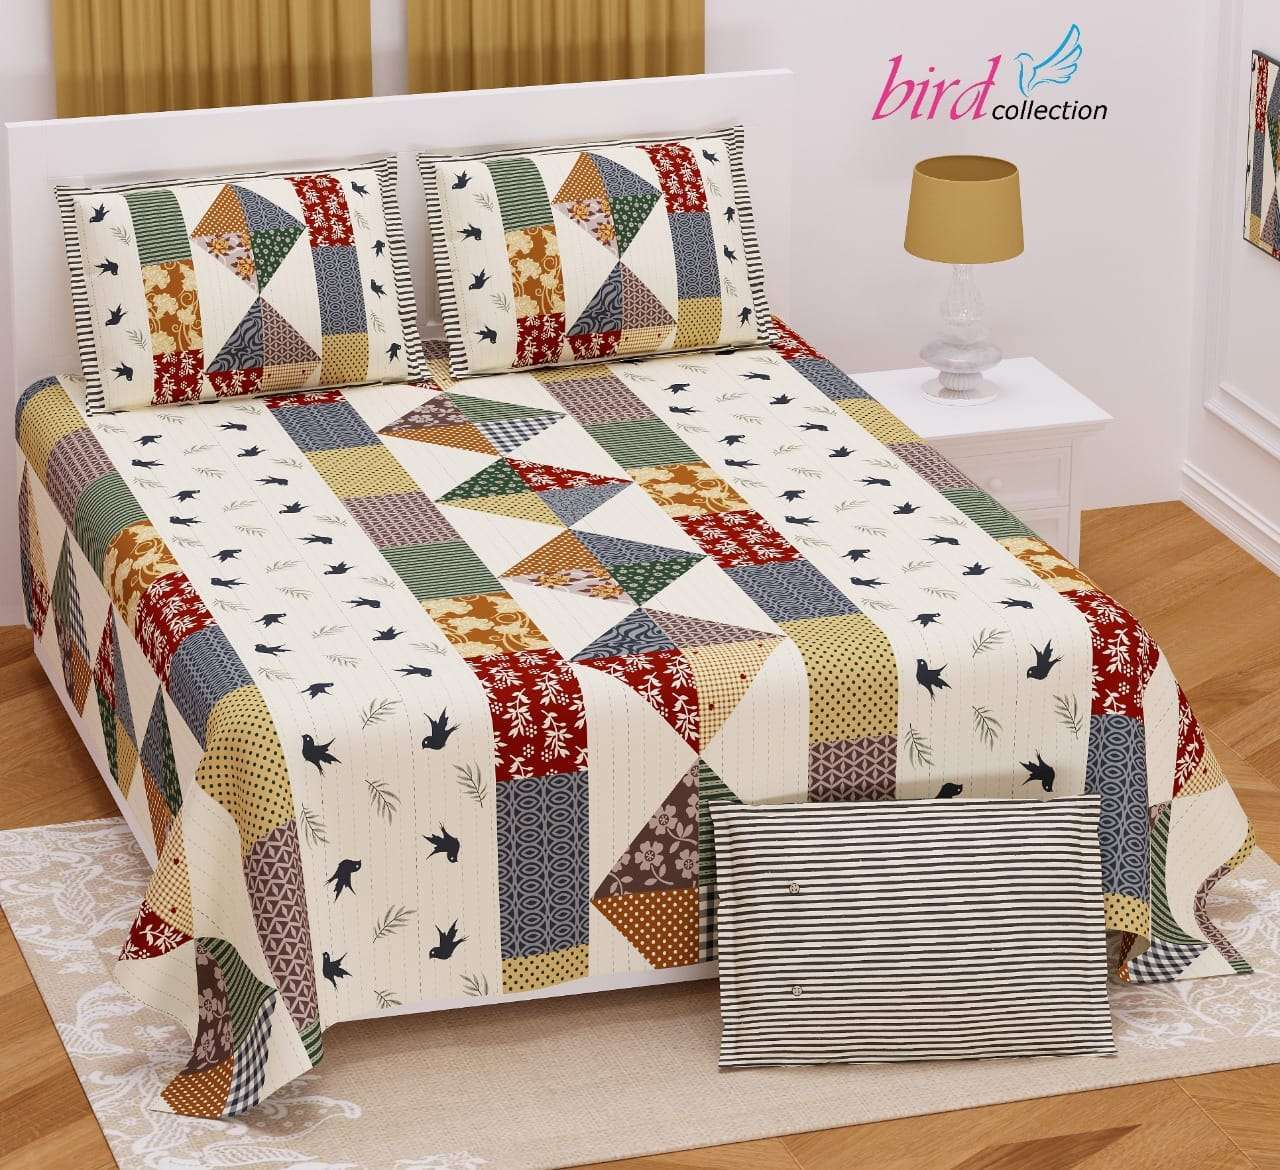 BIRD COLLECTION TWILL SATIN FLORAL PATTERN KING SIZE BED SHEETS WHOLESALE PRICE